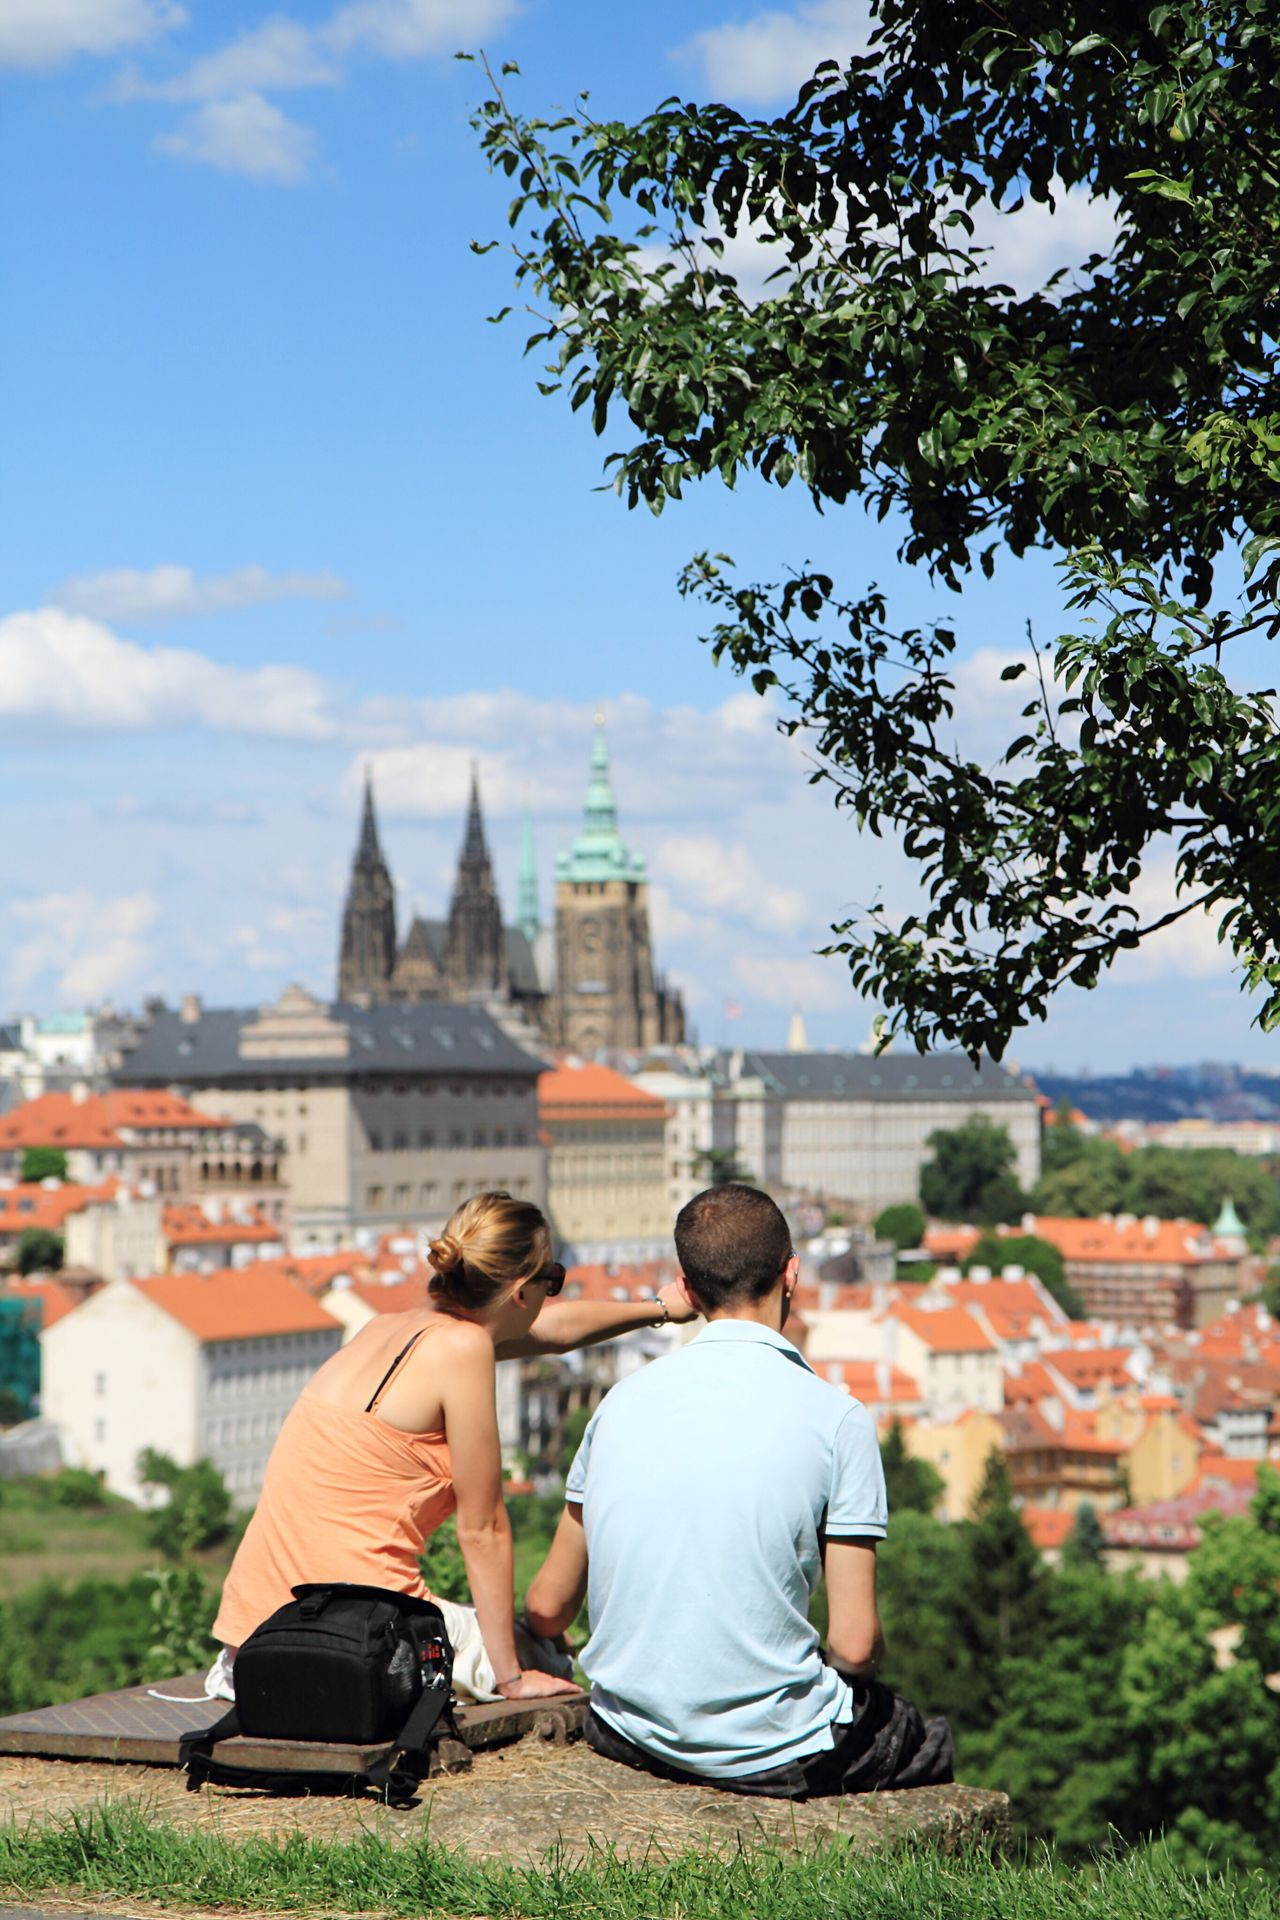 Beautiful stock photos of prague, two people, heterosexual couple, young men, young adult